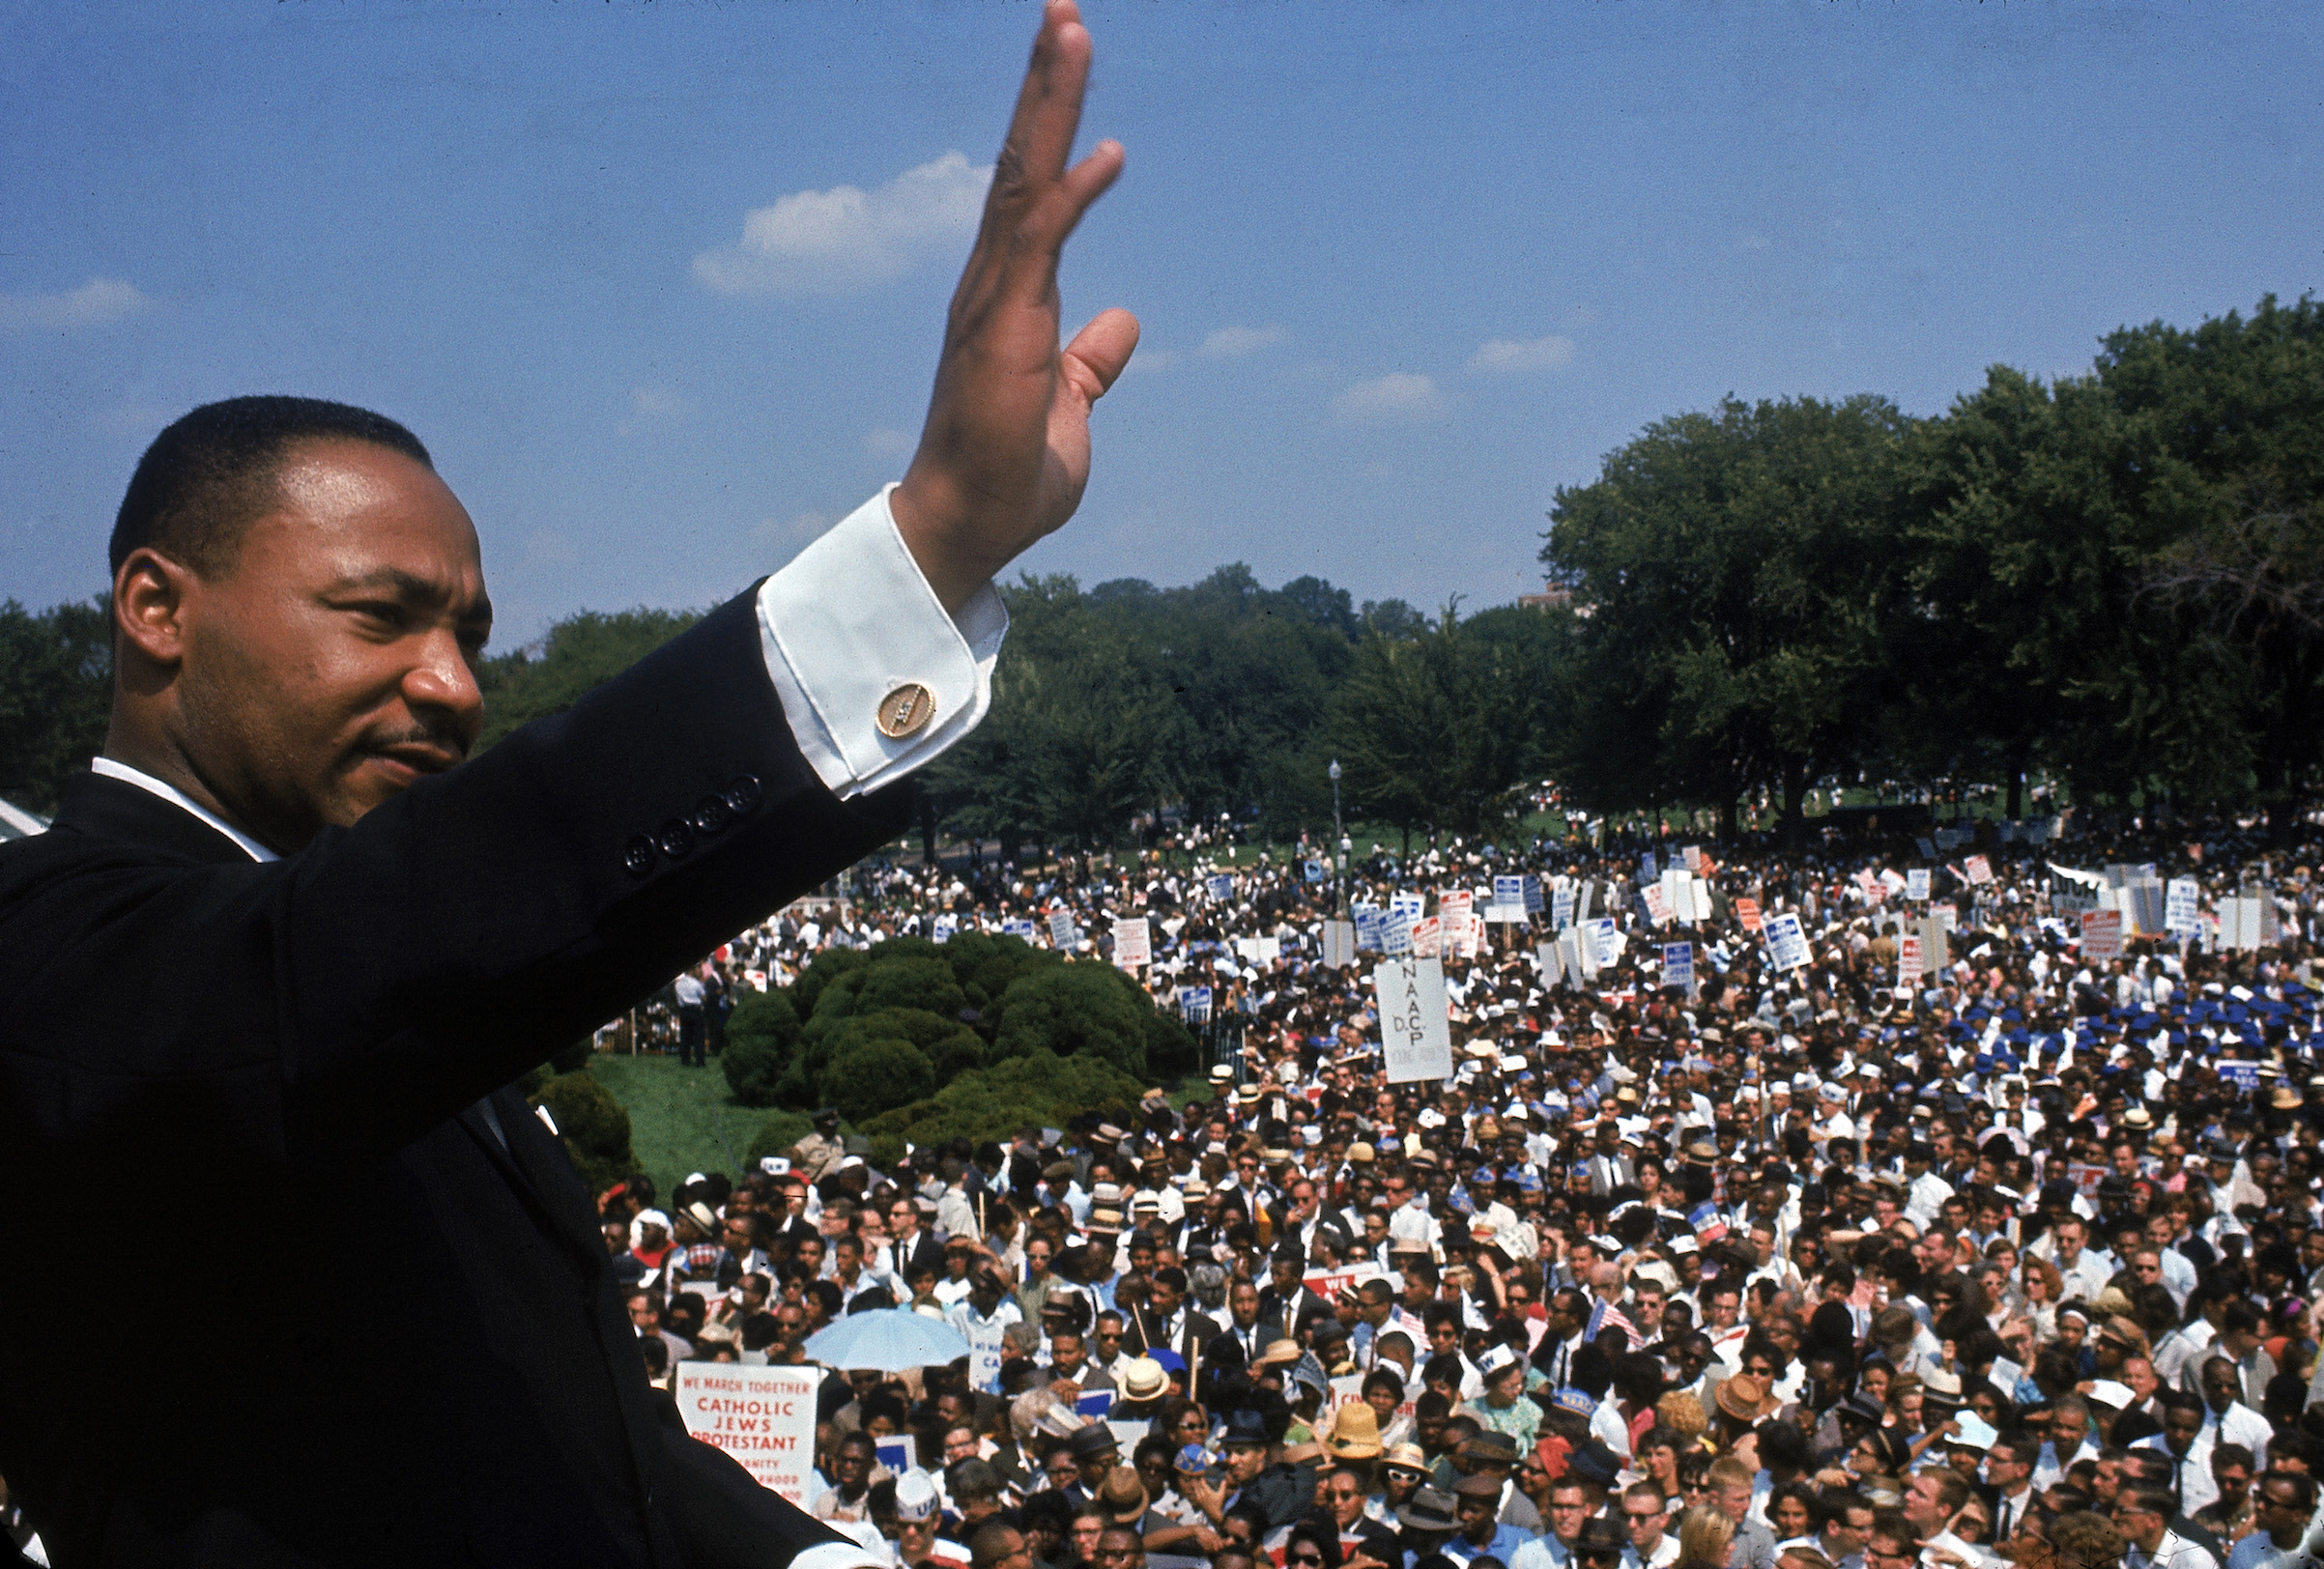 Martin Luther King Jr Day: What We Get Wrong About His Story Time